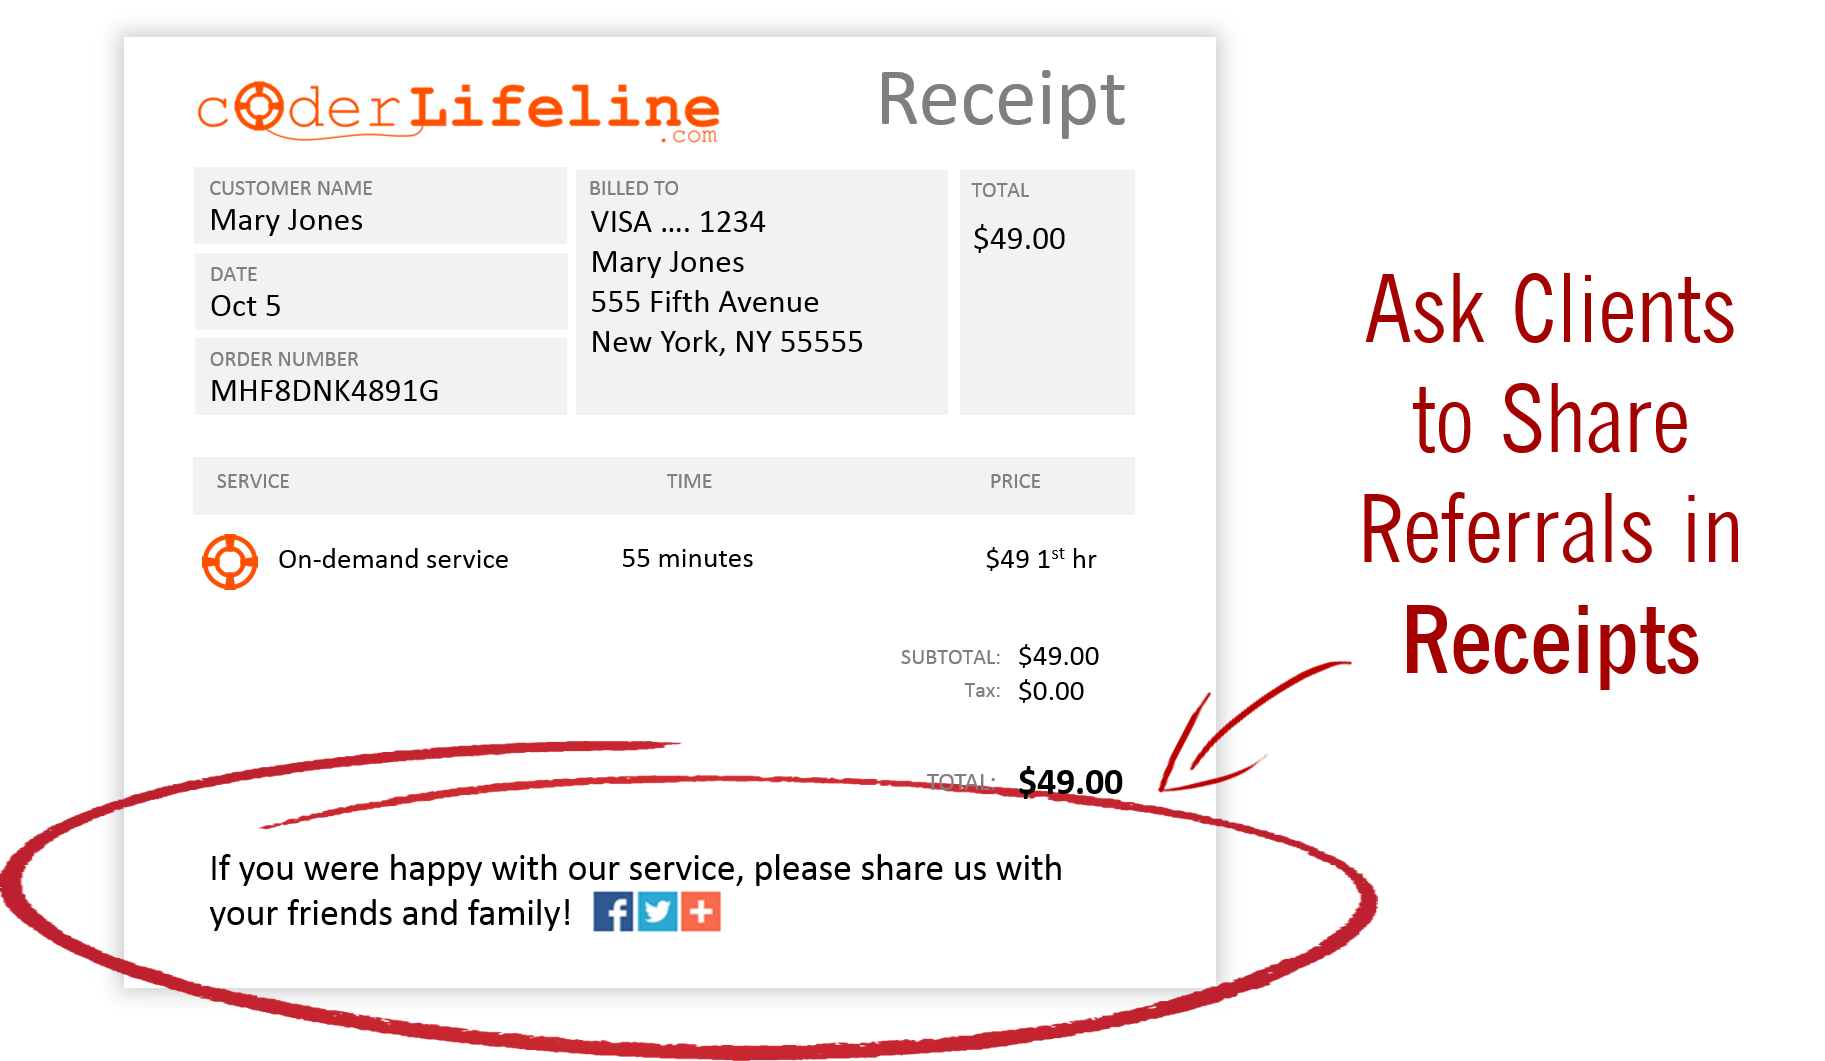 How to Get Referrals - Ask Clients To Share Referrals In Receipts